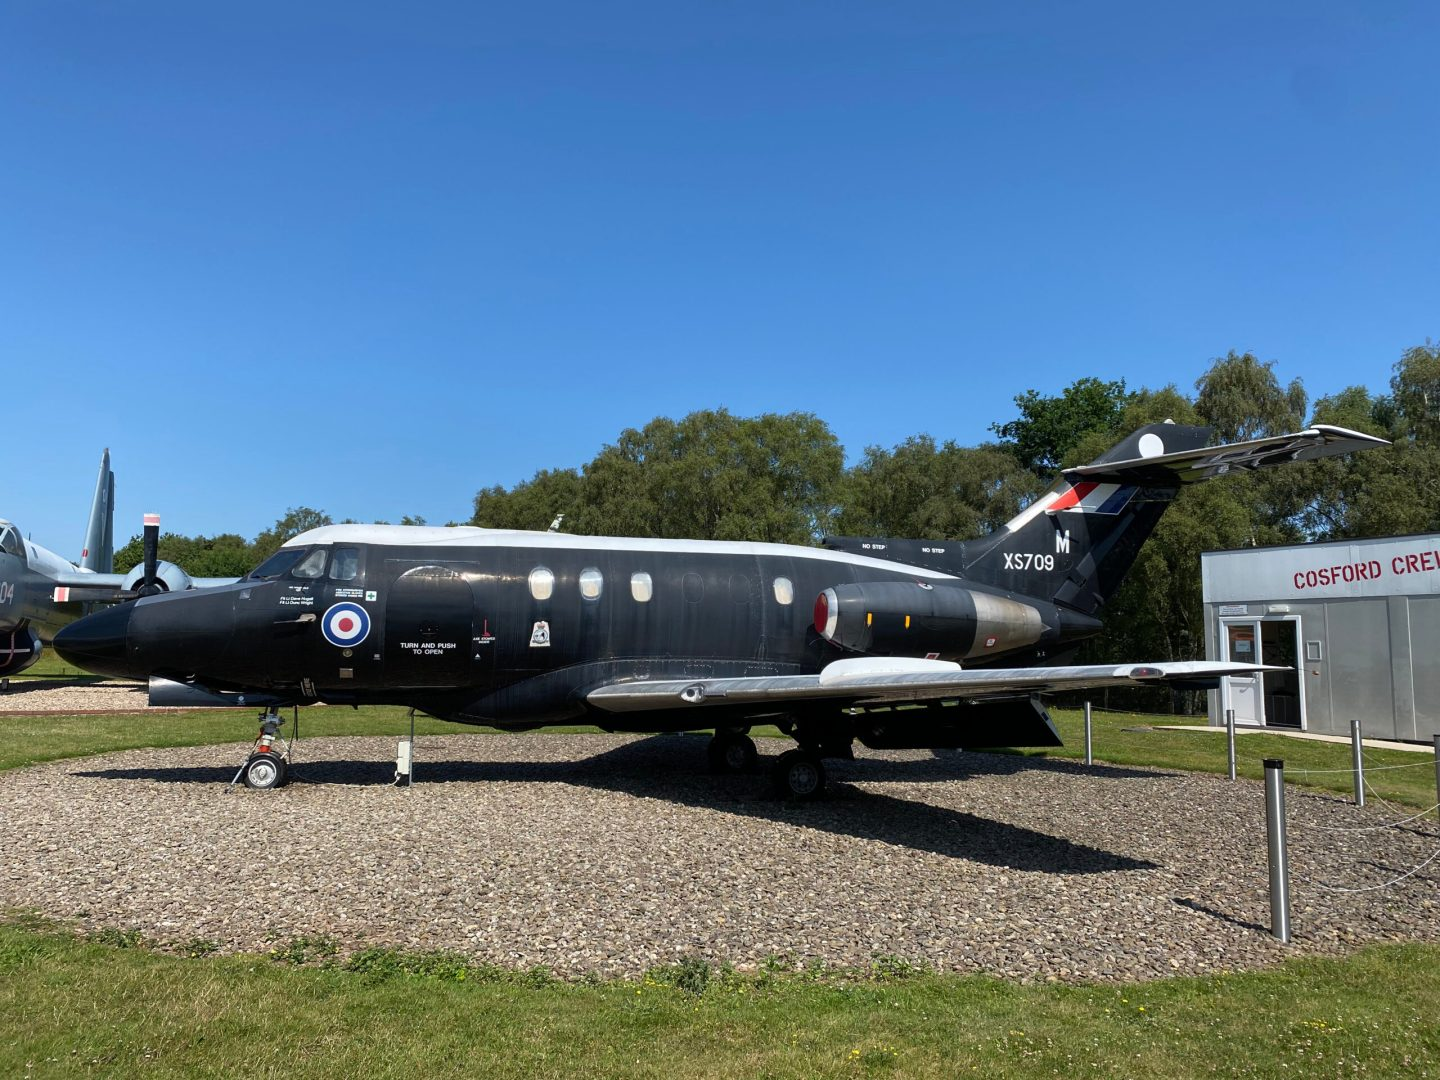 Our Visit to RAF Cosford